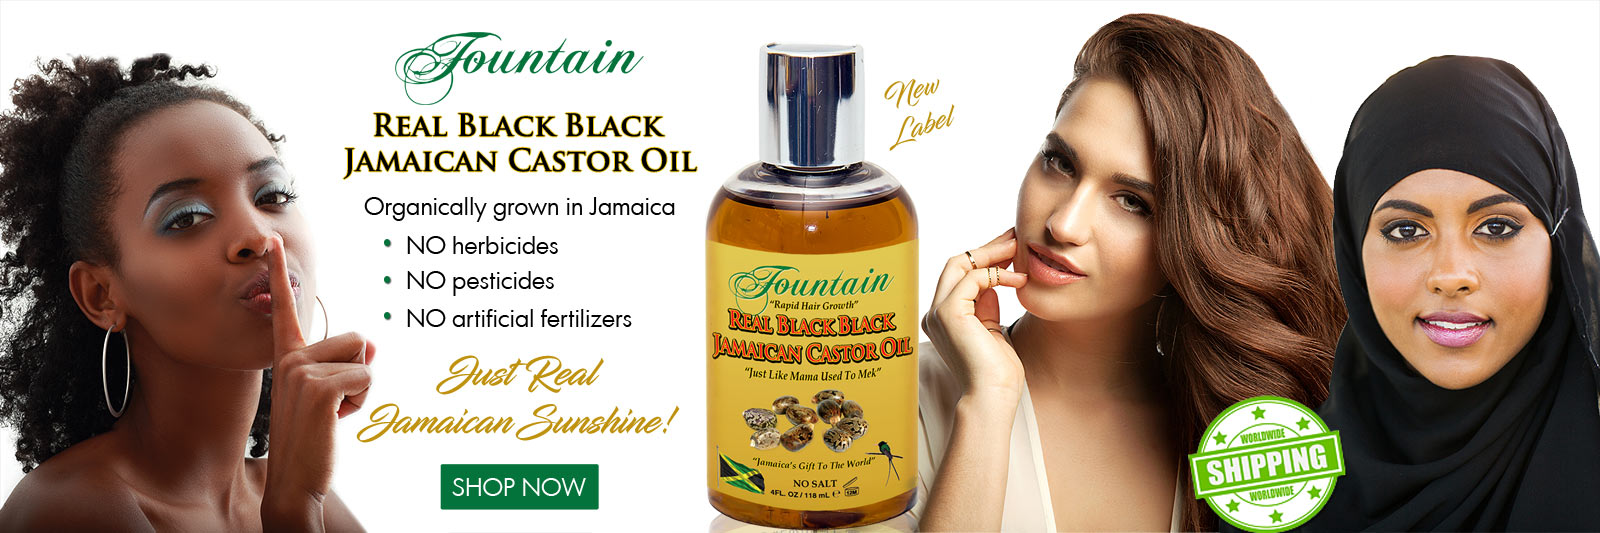 Real Black Black Jamaican Castor Oil